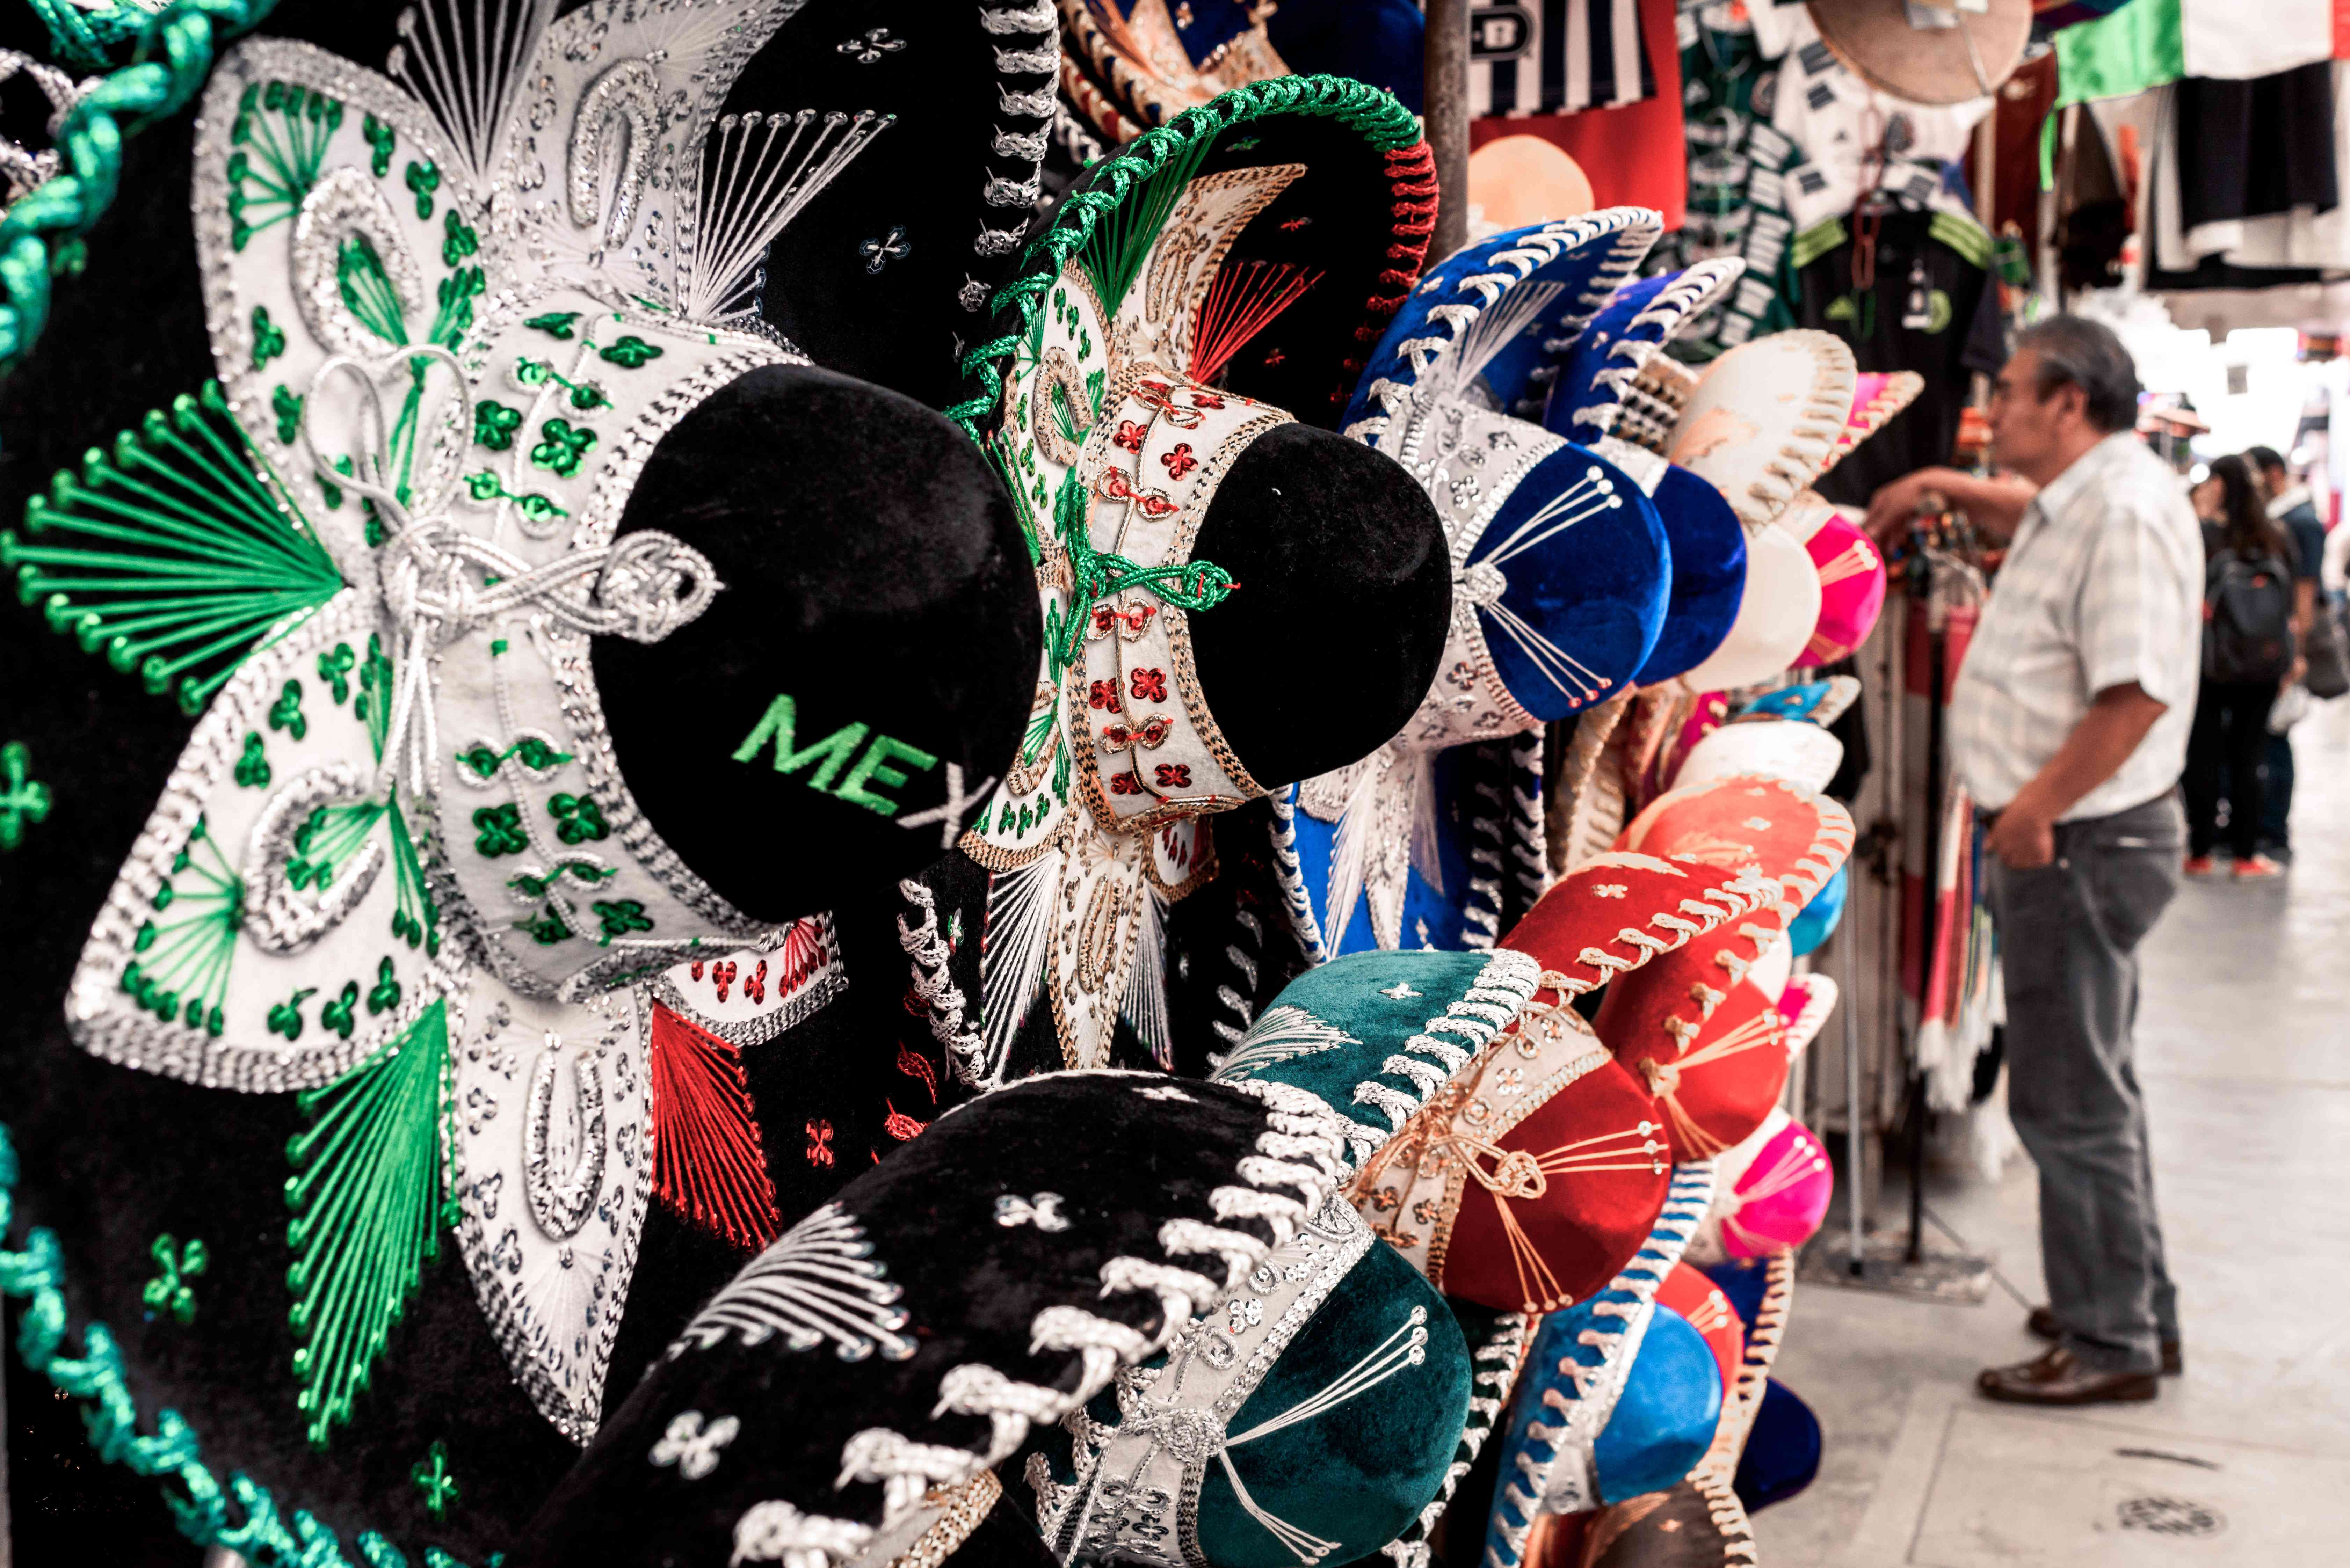 Colorful mariachi hats for sale